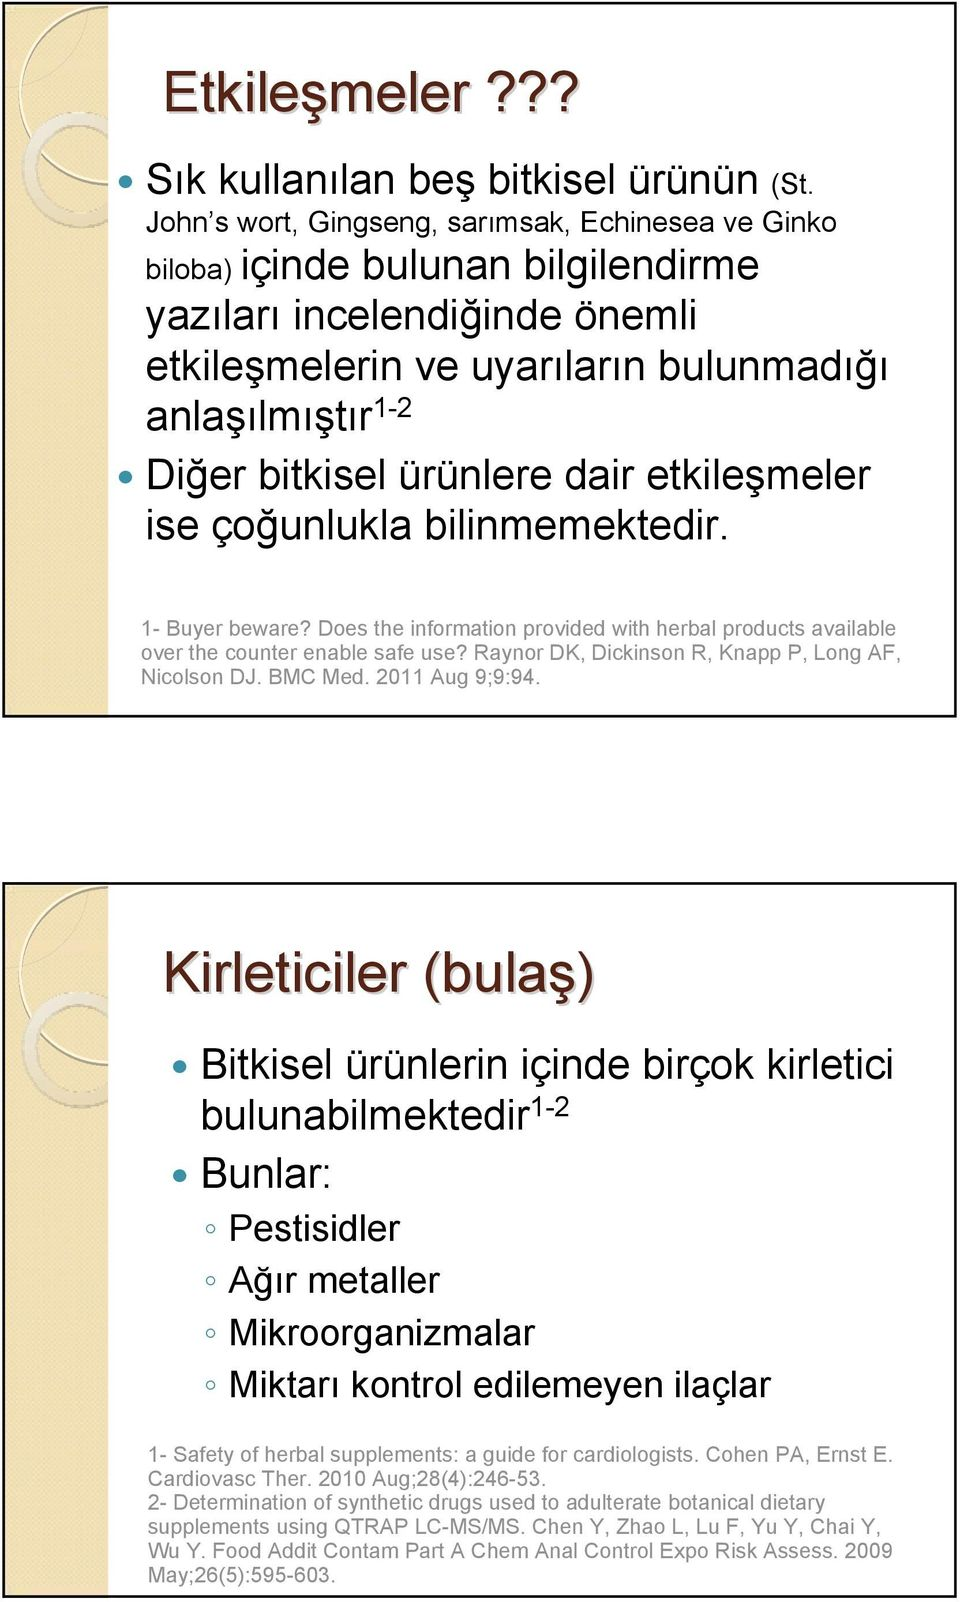 ürünlere dair etkileşmeler ise çoğunlukla bilinmemektedir. 1- Buyer beware? Does the information provided with herbal products available over the counter enable safe use?